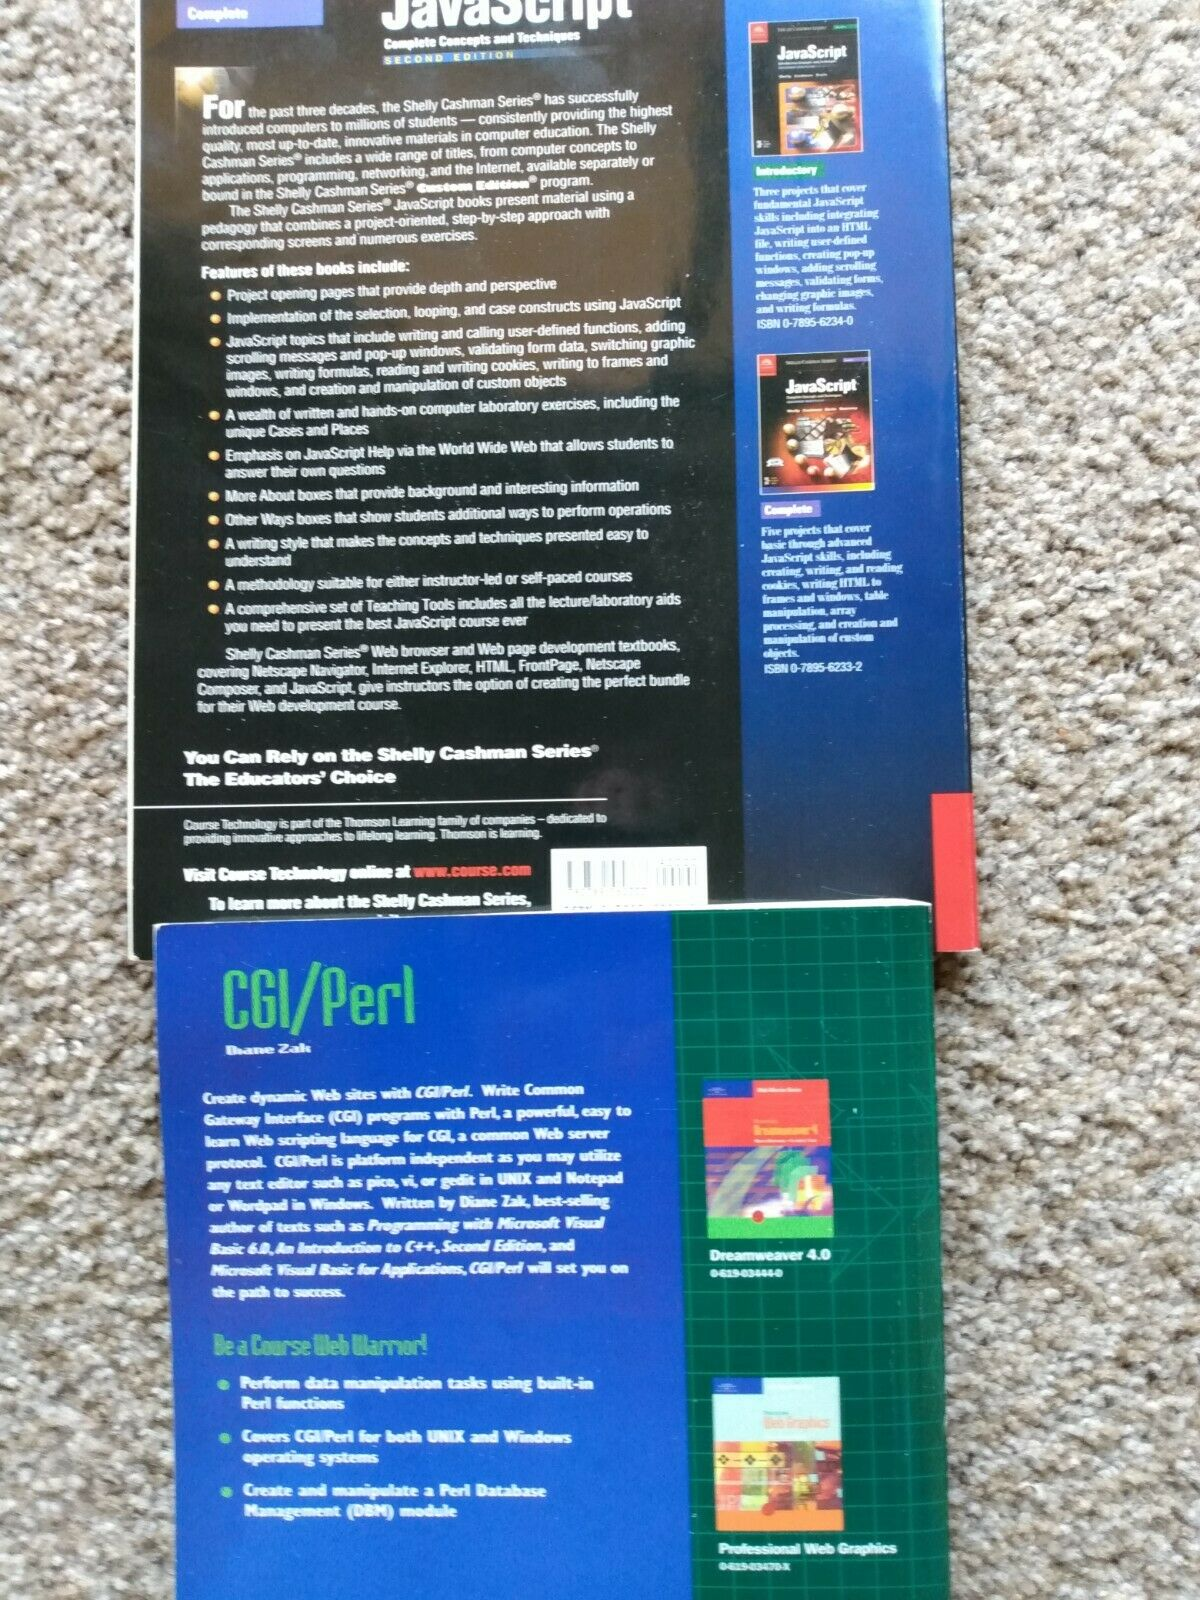 JavaScript and CGI Perl programming books: Great condition! |